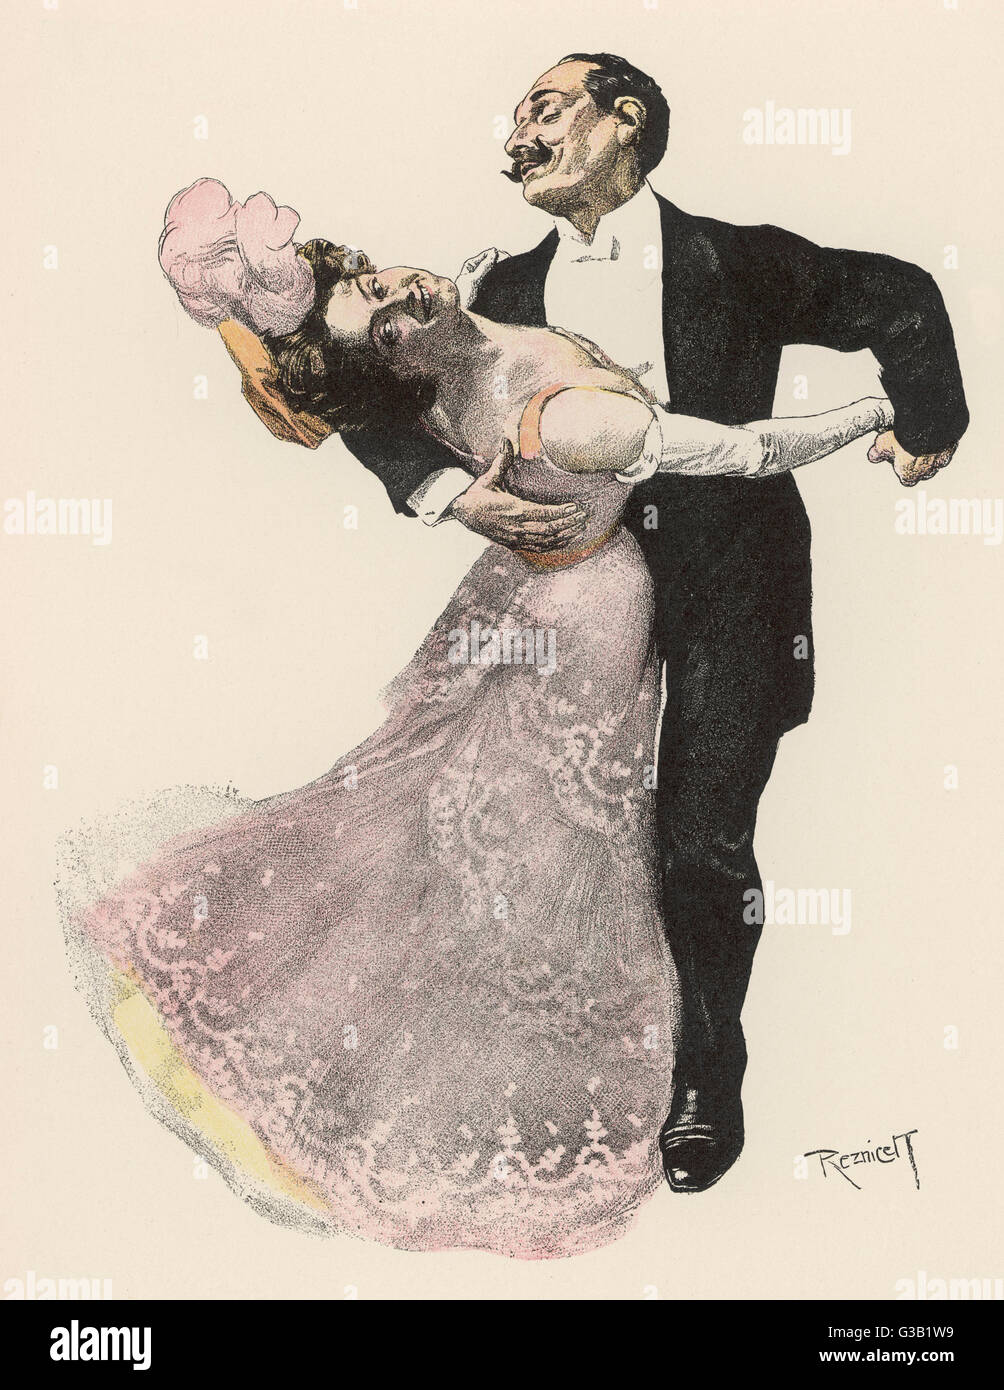 'SELIGKEIT !' (Bliss !) A couple lose themselves in  the rapture of the dance       Date: 1908 - Stock Image